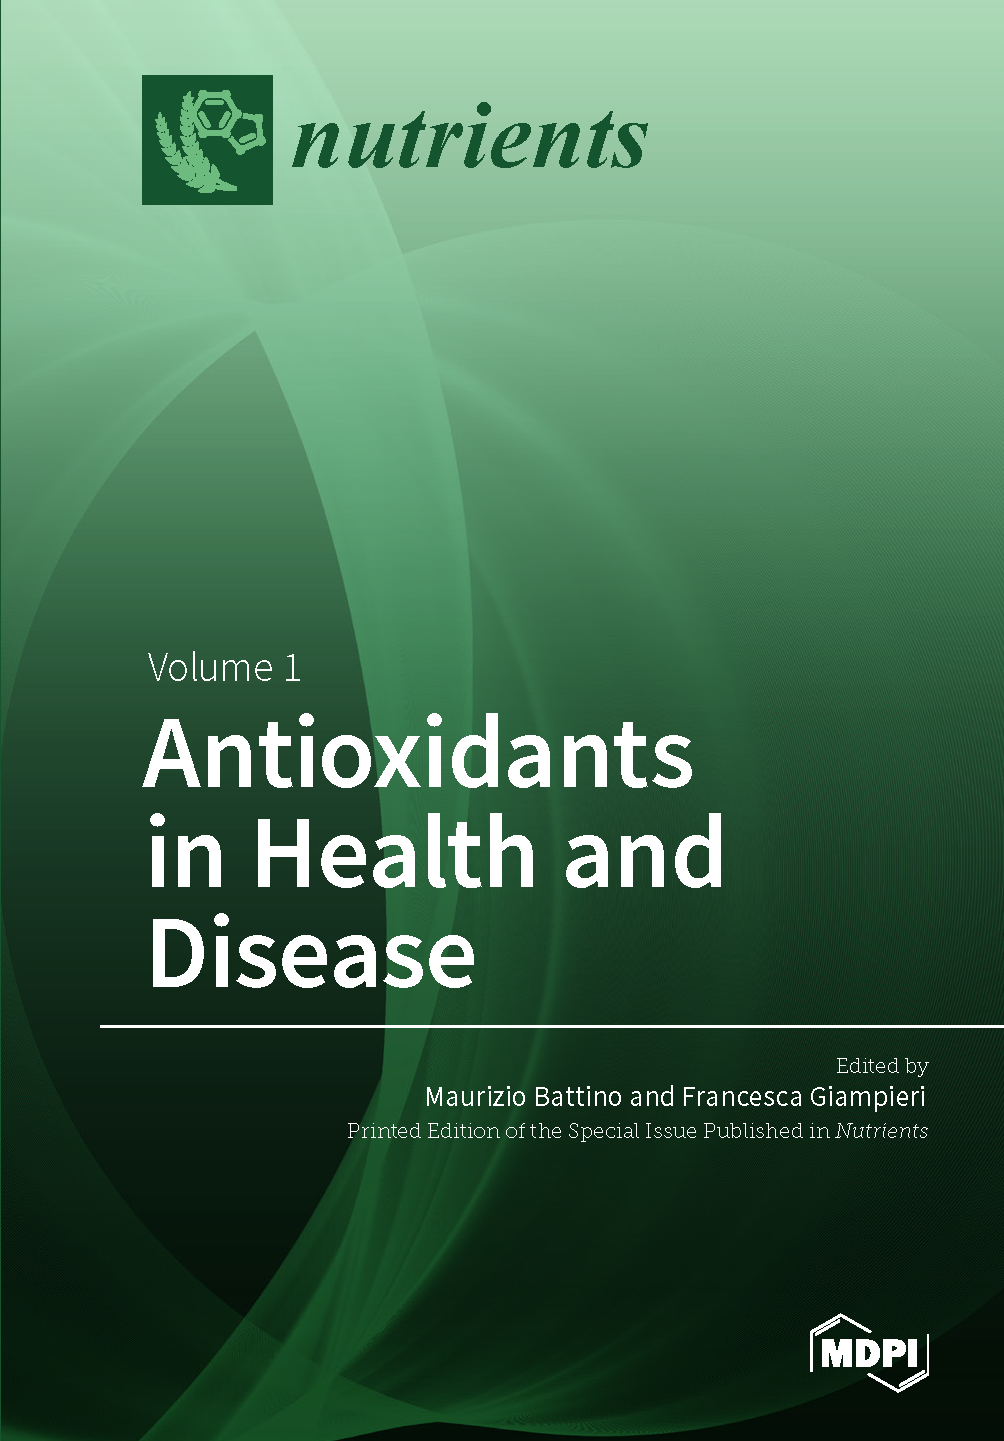 Antioxidants in Health and Disease